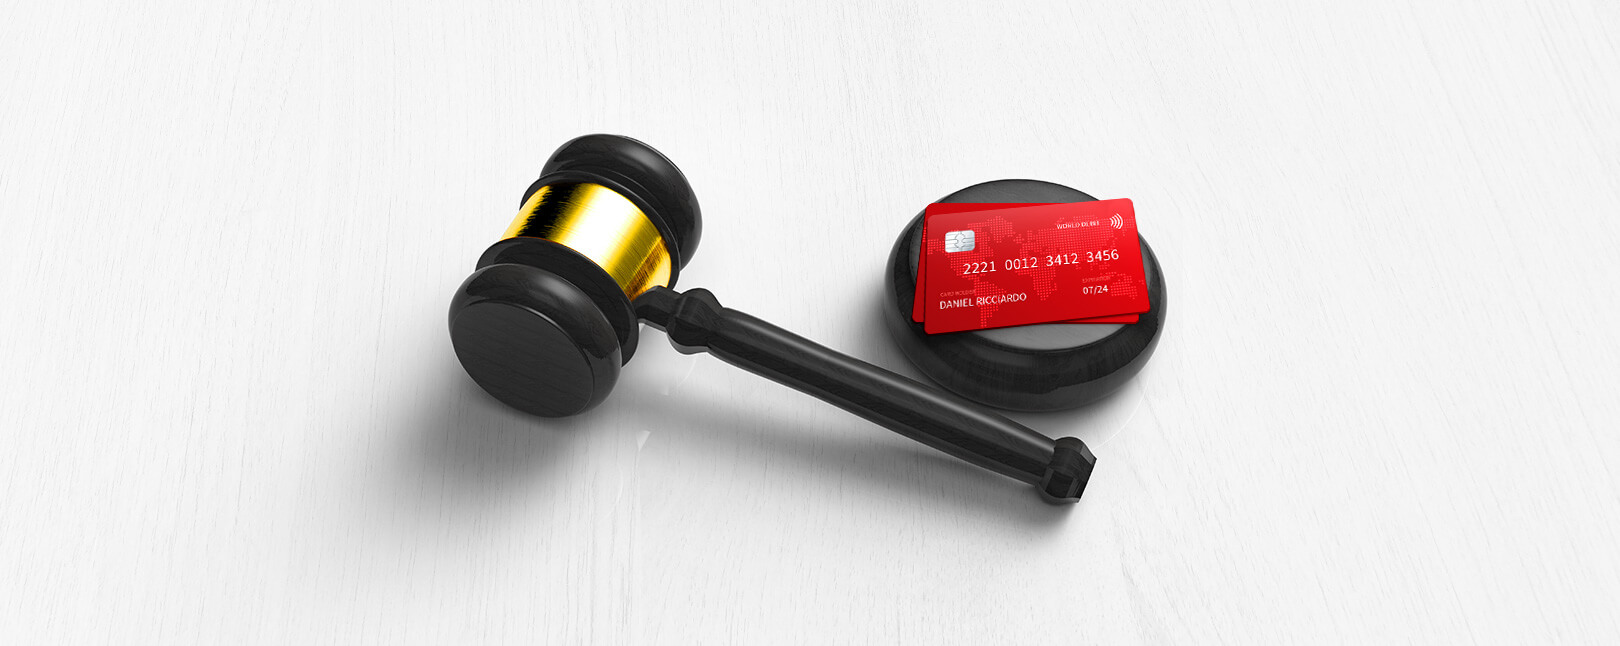 Chargeback Laws